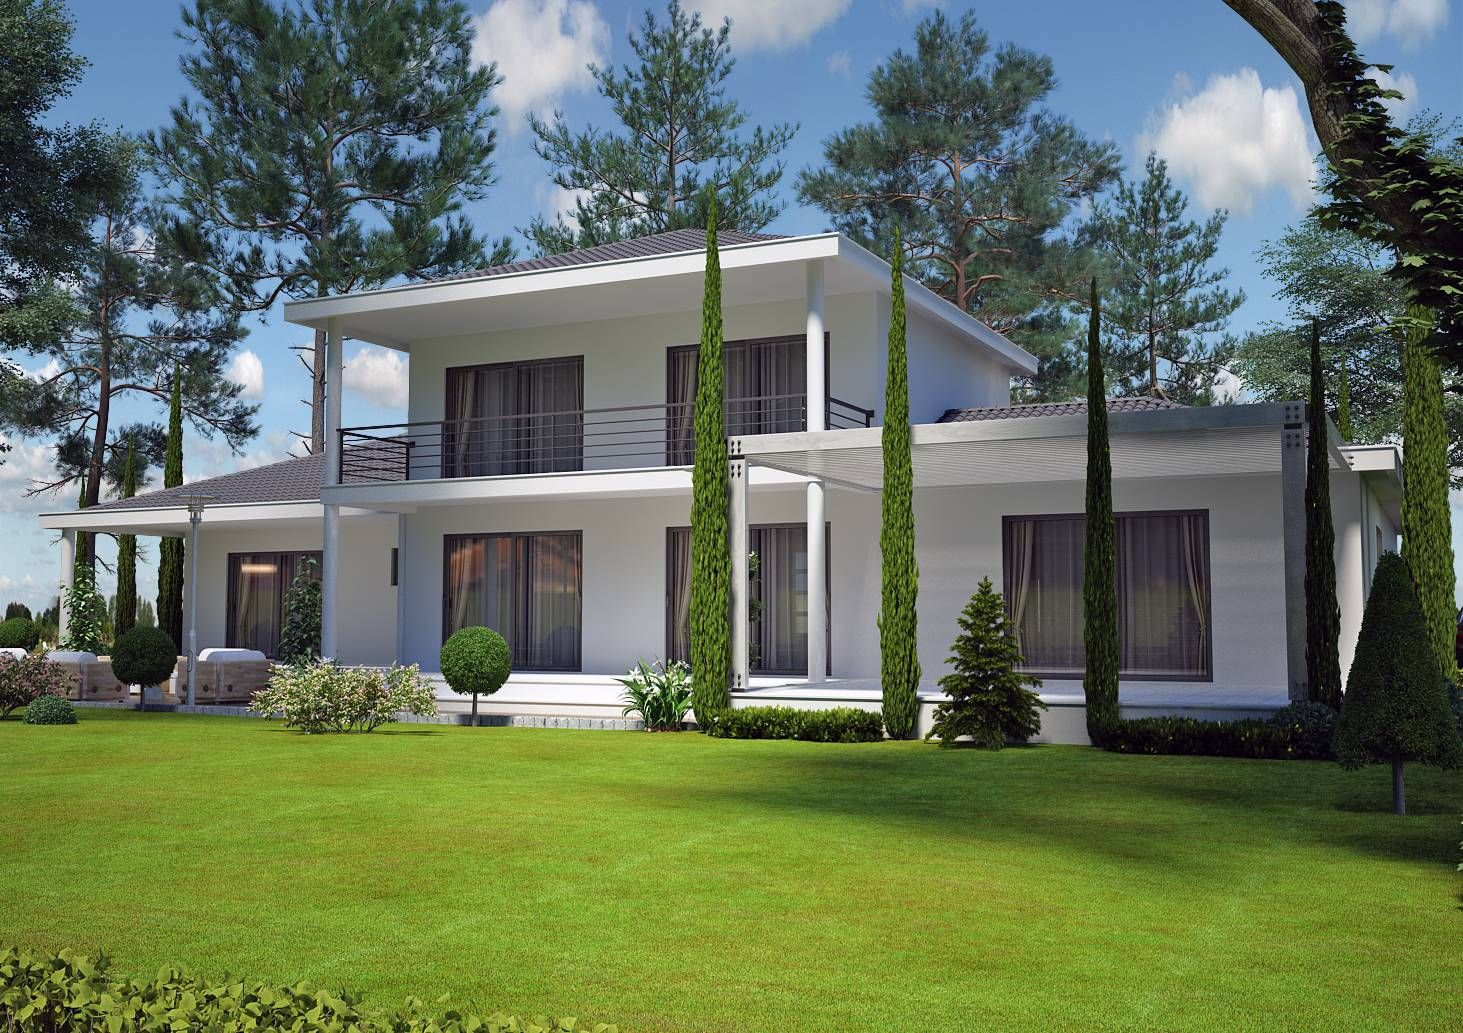 Villa contemporaine 150 m2 etage mod le pinede salon for Plan de maison moderne a etage